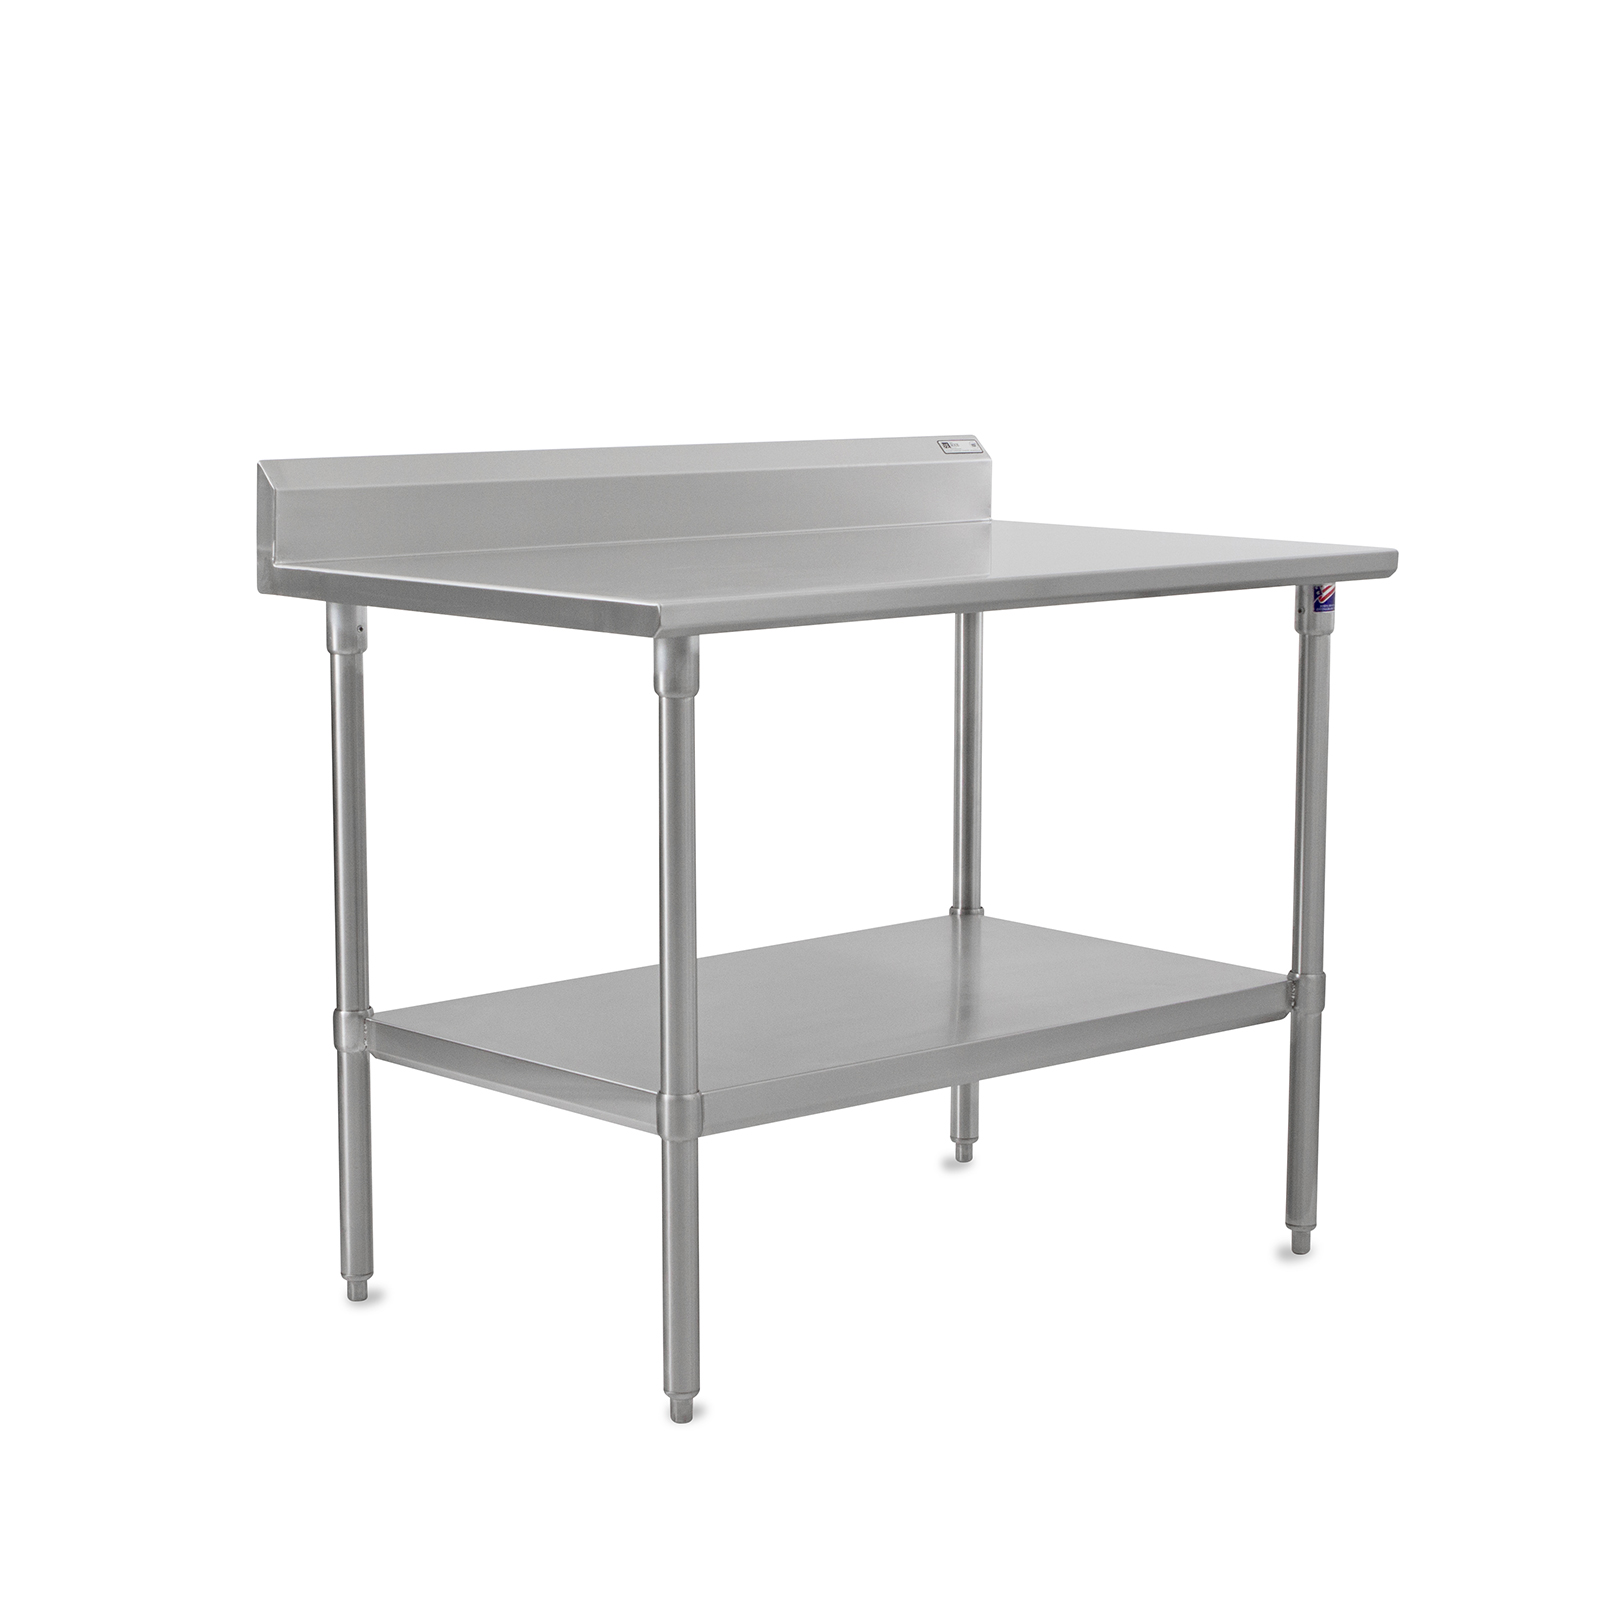 John Boos ST6R5-3048SSK work table,  40